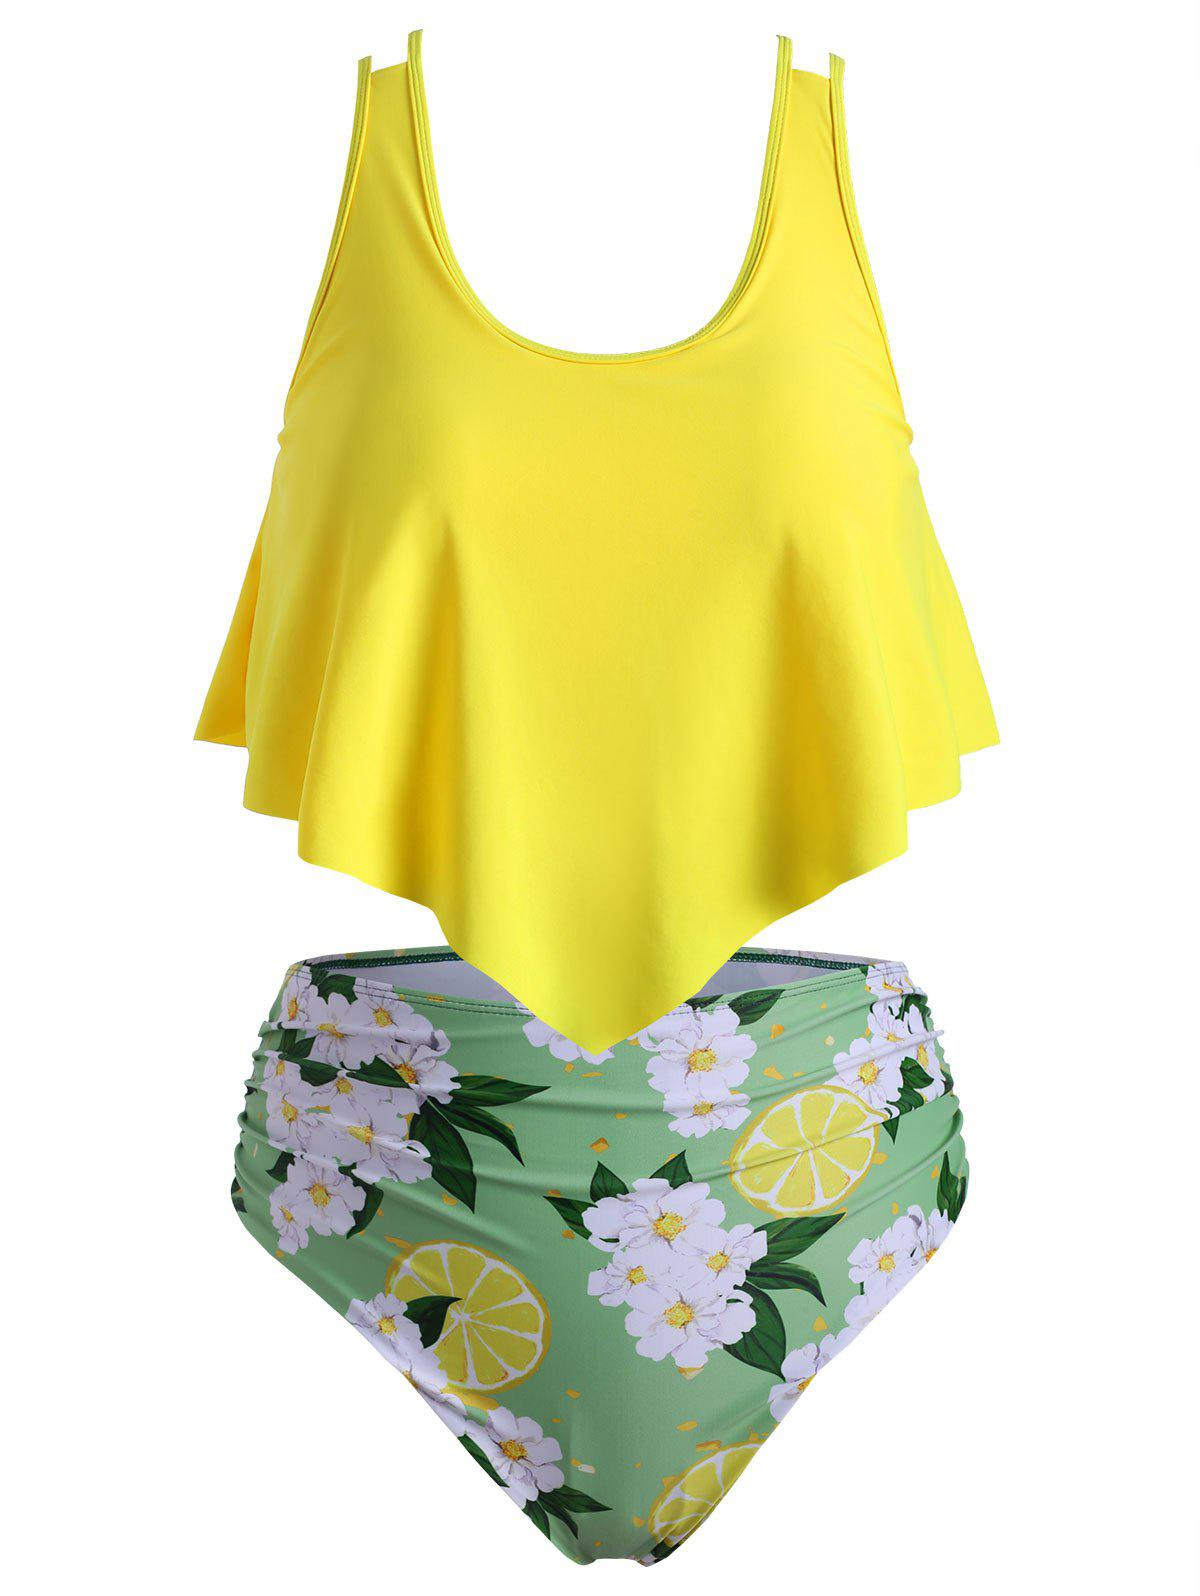 Floral Lemon Print Flounce Ruched Plus Size Tankini Swimsuit - YELLOW 5X